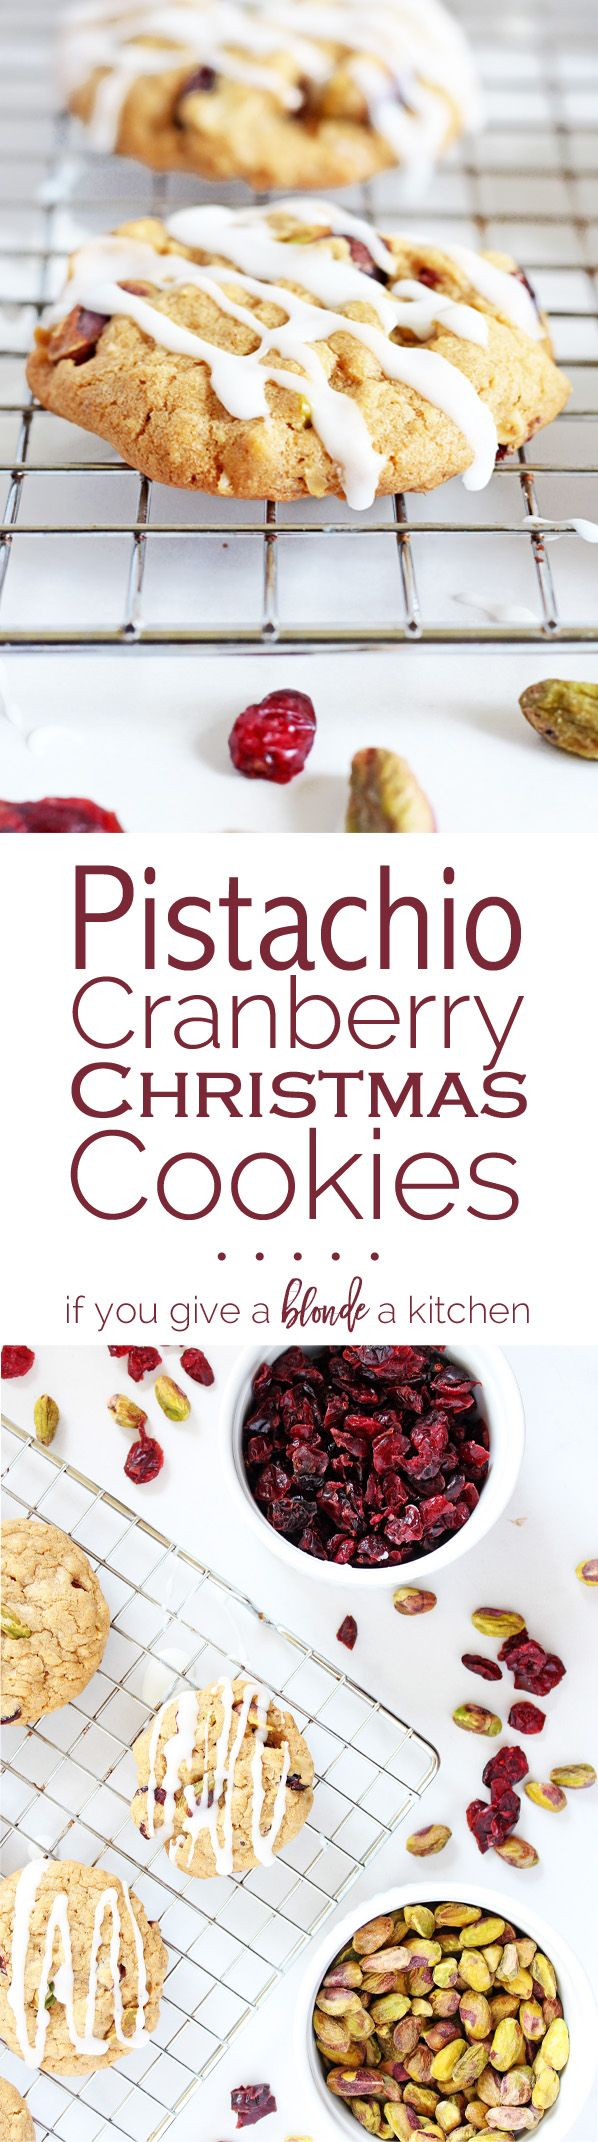 Pistachio cranberry Christmas cookies are made with an oatmeal cookie base, loaded with pistachios and cranberries, and then drizzled with a simple icing. | www.ifyougiveablondeakitchen.com